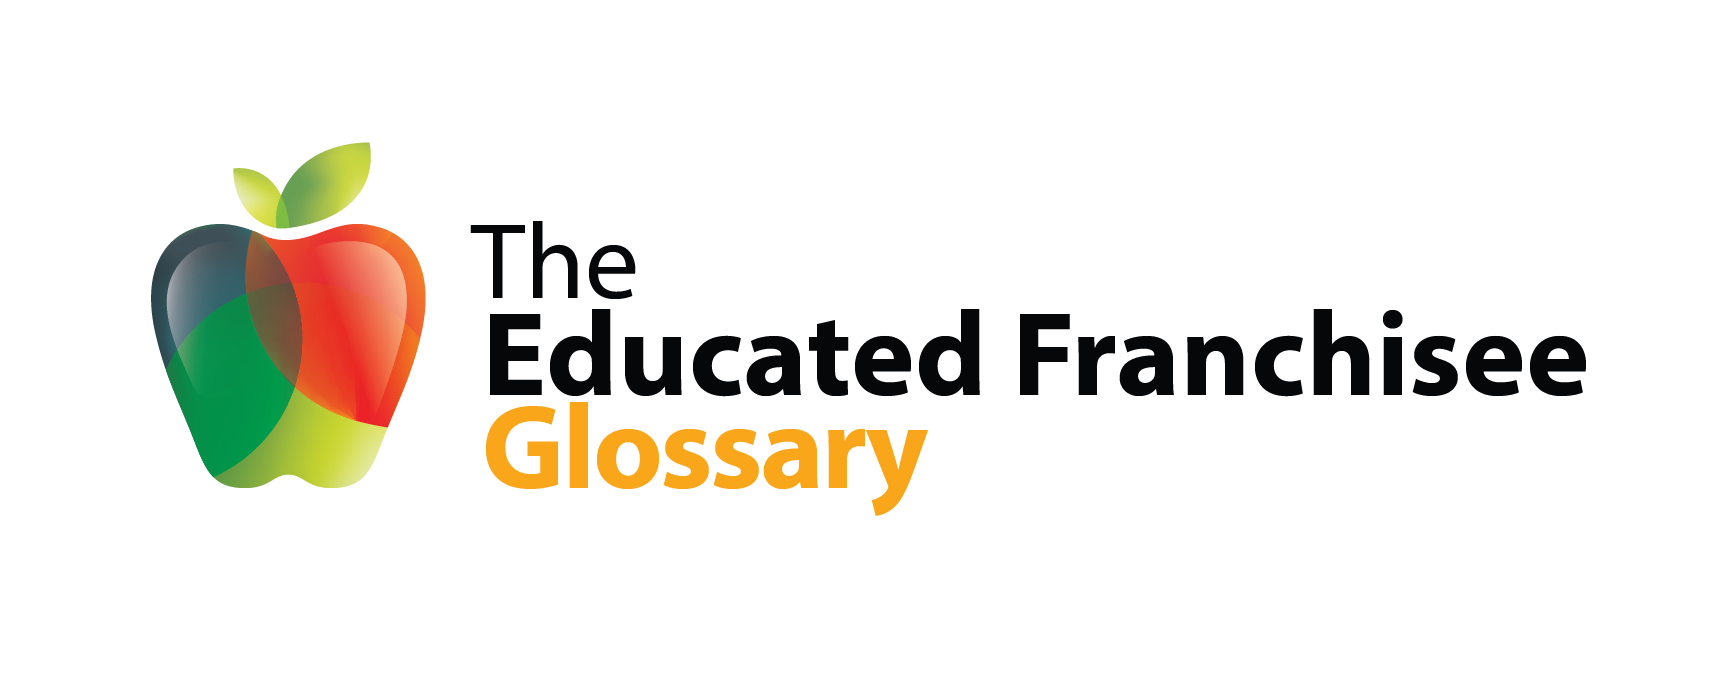 https://www.thefddstore.com/wp-content/uploads/2017/08/EF_Glossary.png